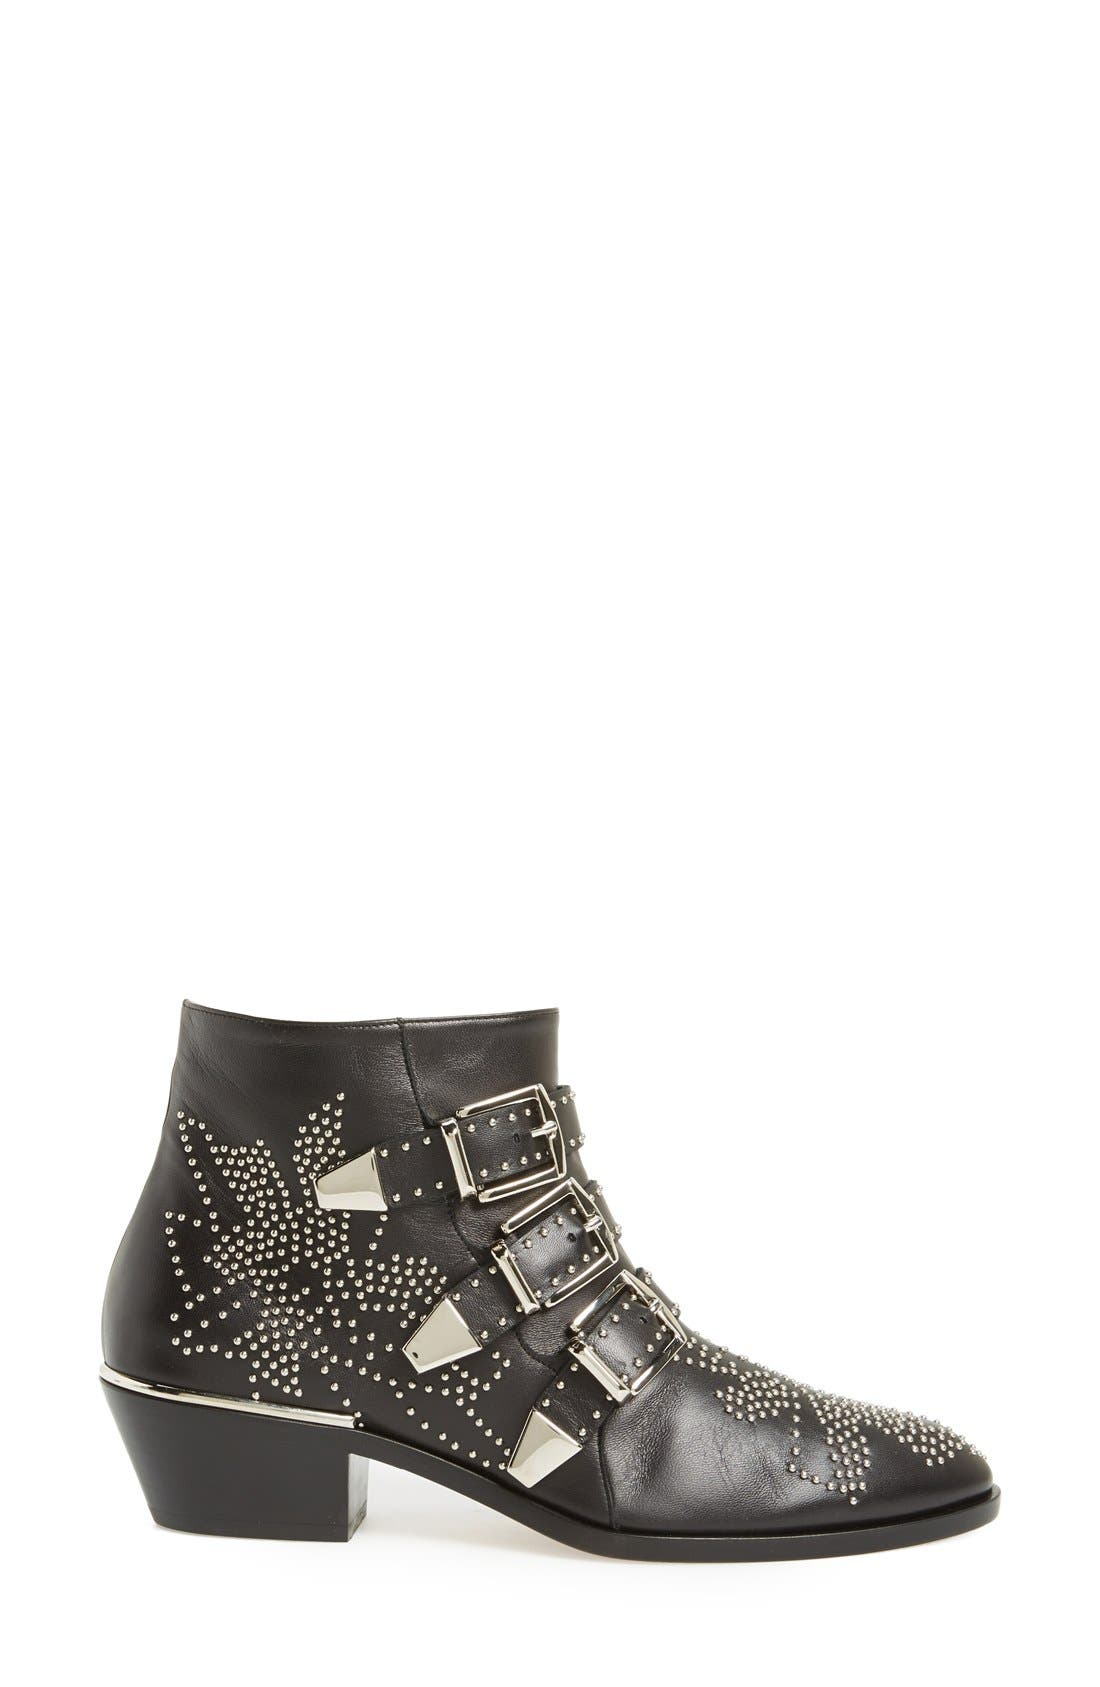 'Suzanna' Stud Bootie,                             Alternate thumbnail 4, color,                             Black